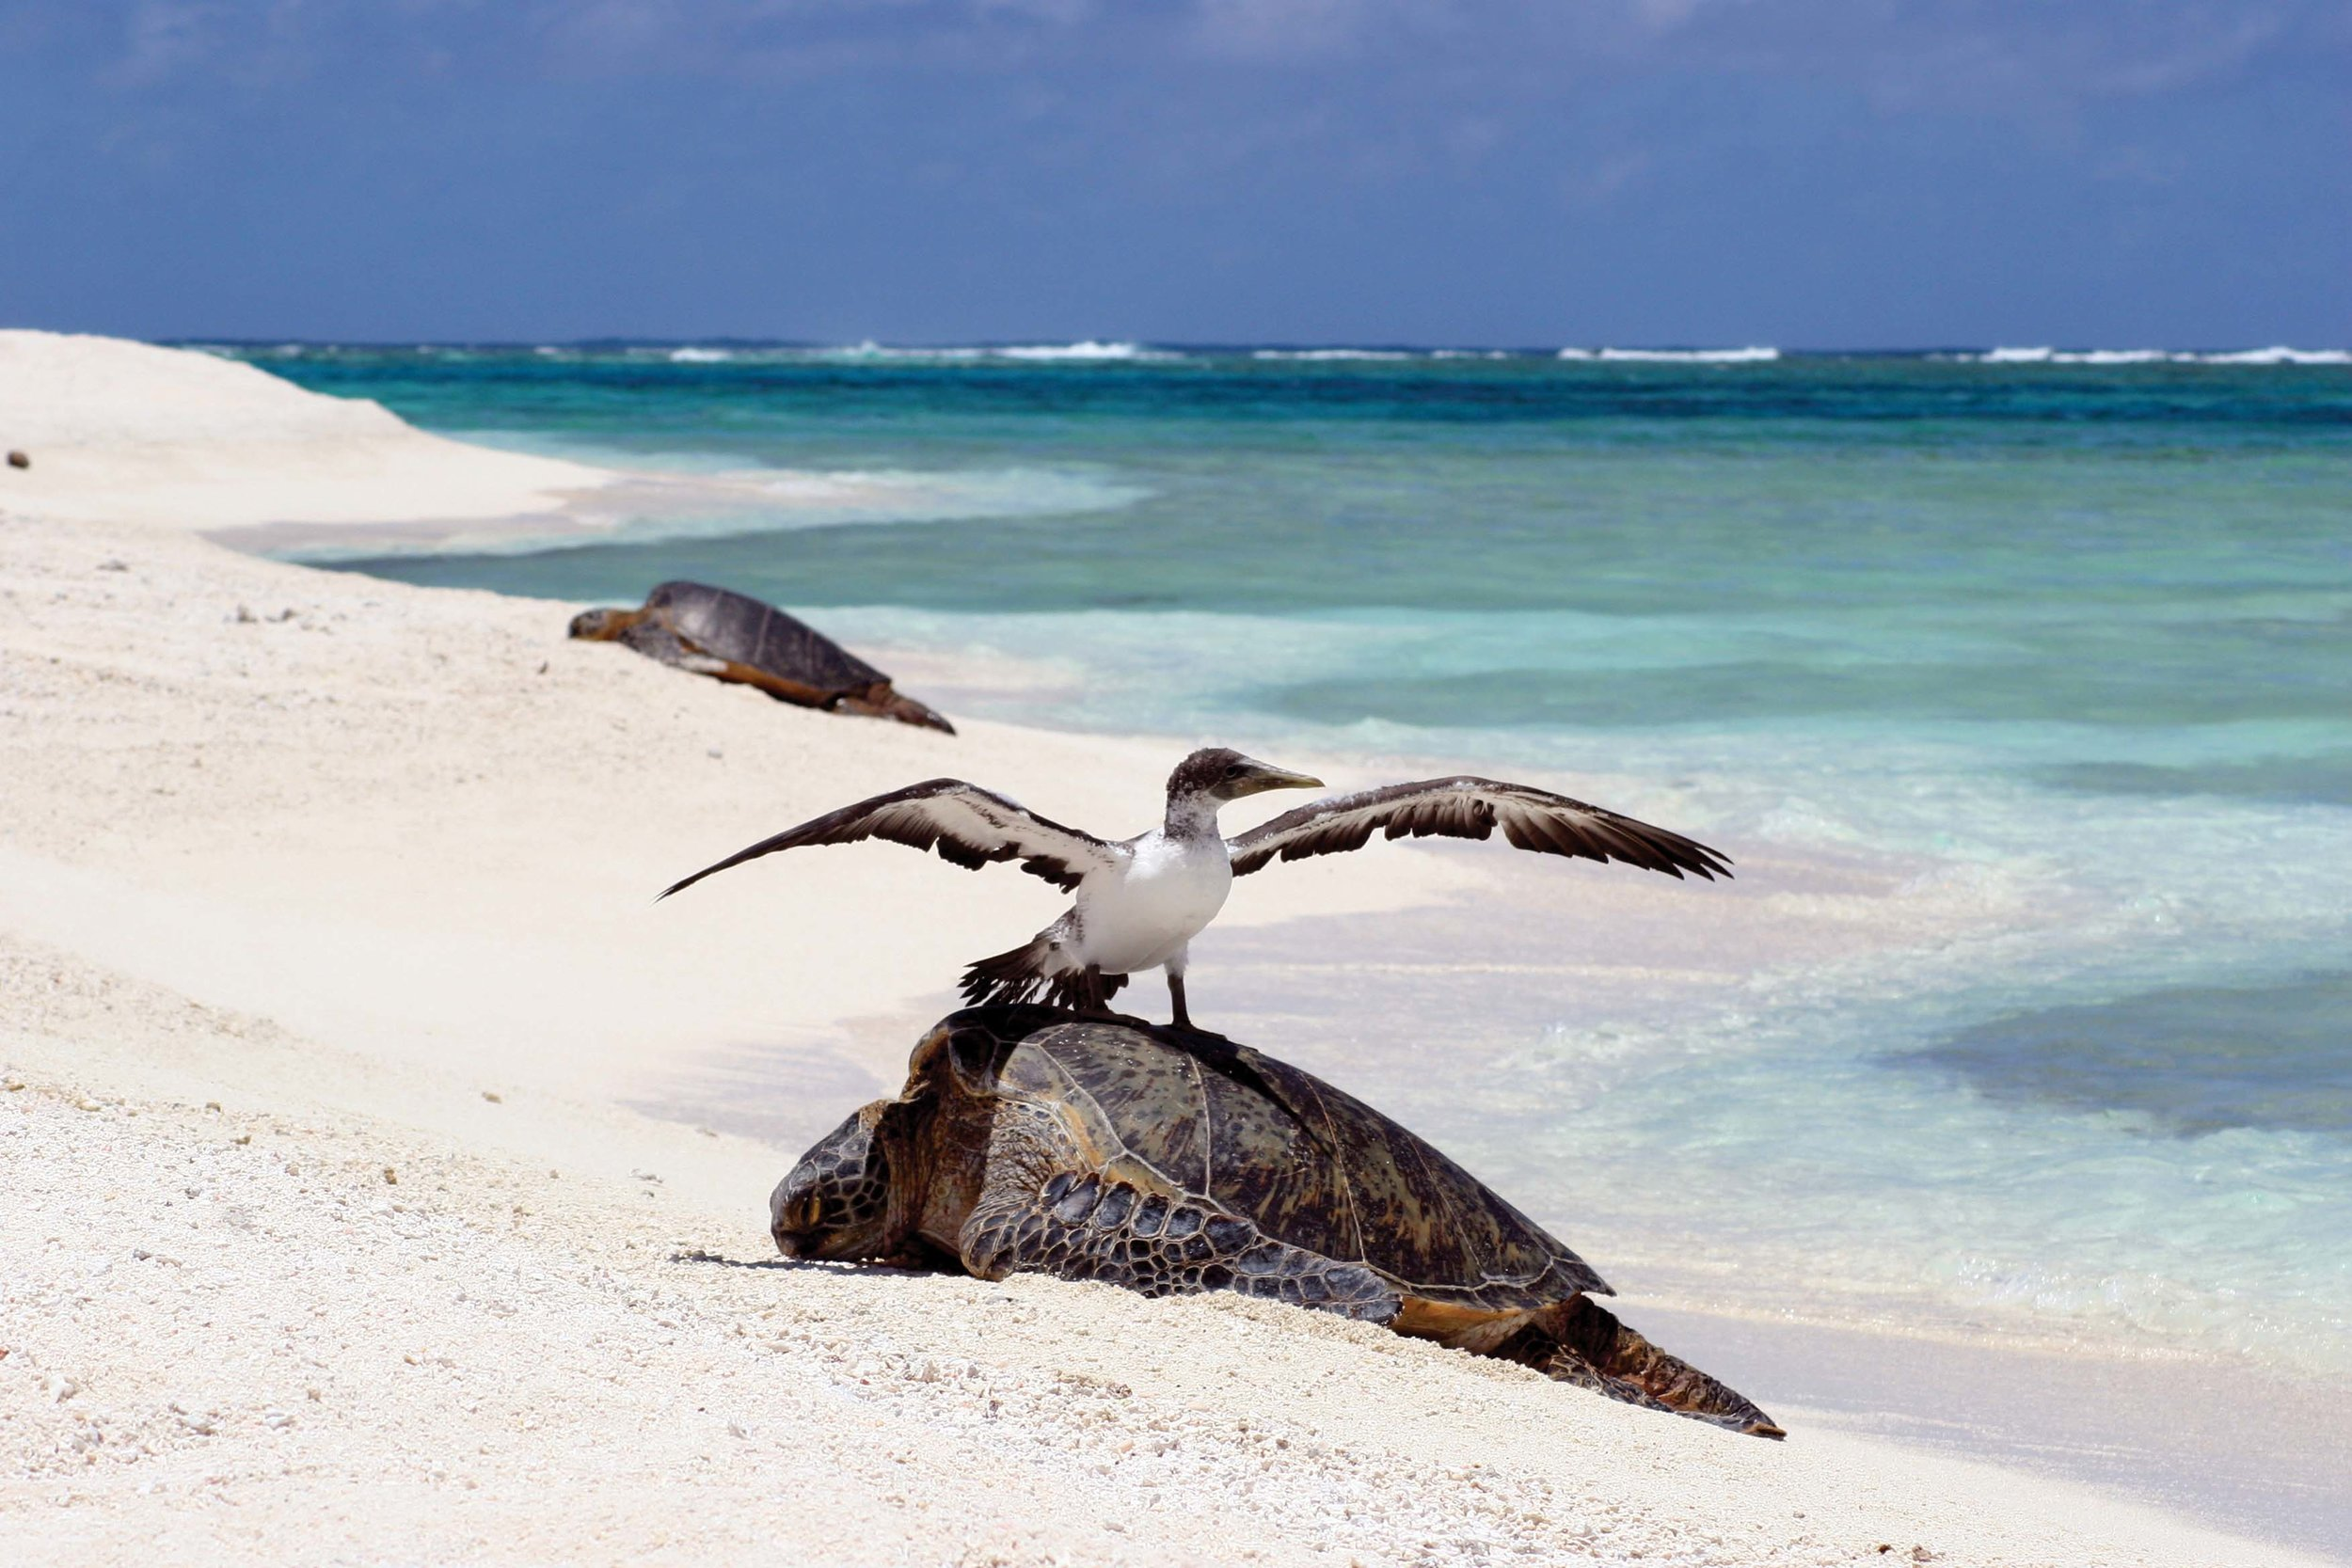 More than 90 percent of all sea turtle nesting in Hawaii occurs at French Frigate Shoals, seen here. Recently, nesting has been increasing in the main Hawaiian Islands, where it was formerly nonexistent. © Mark Sullivan, NOAA affiliate